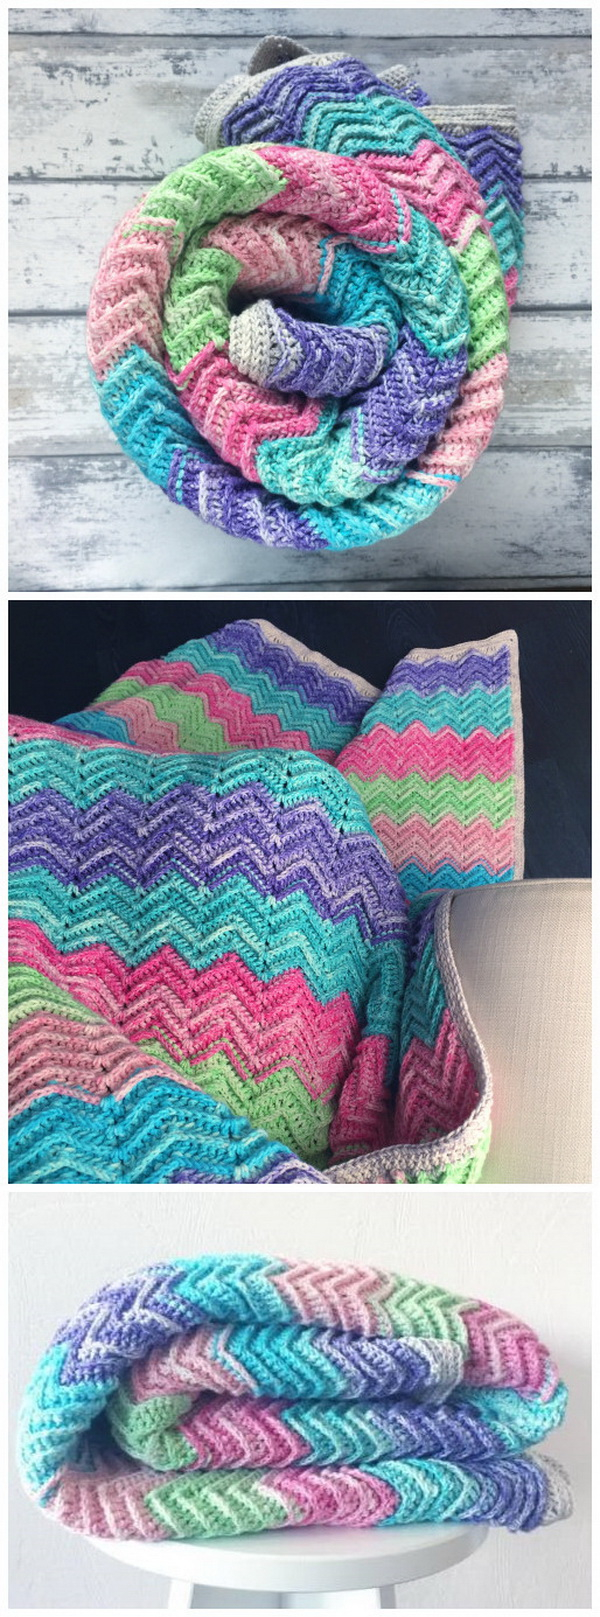 Free Knitting Afghan Patterns For Beginners Textured Knitting Afghans Patterns Free